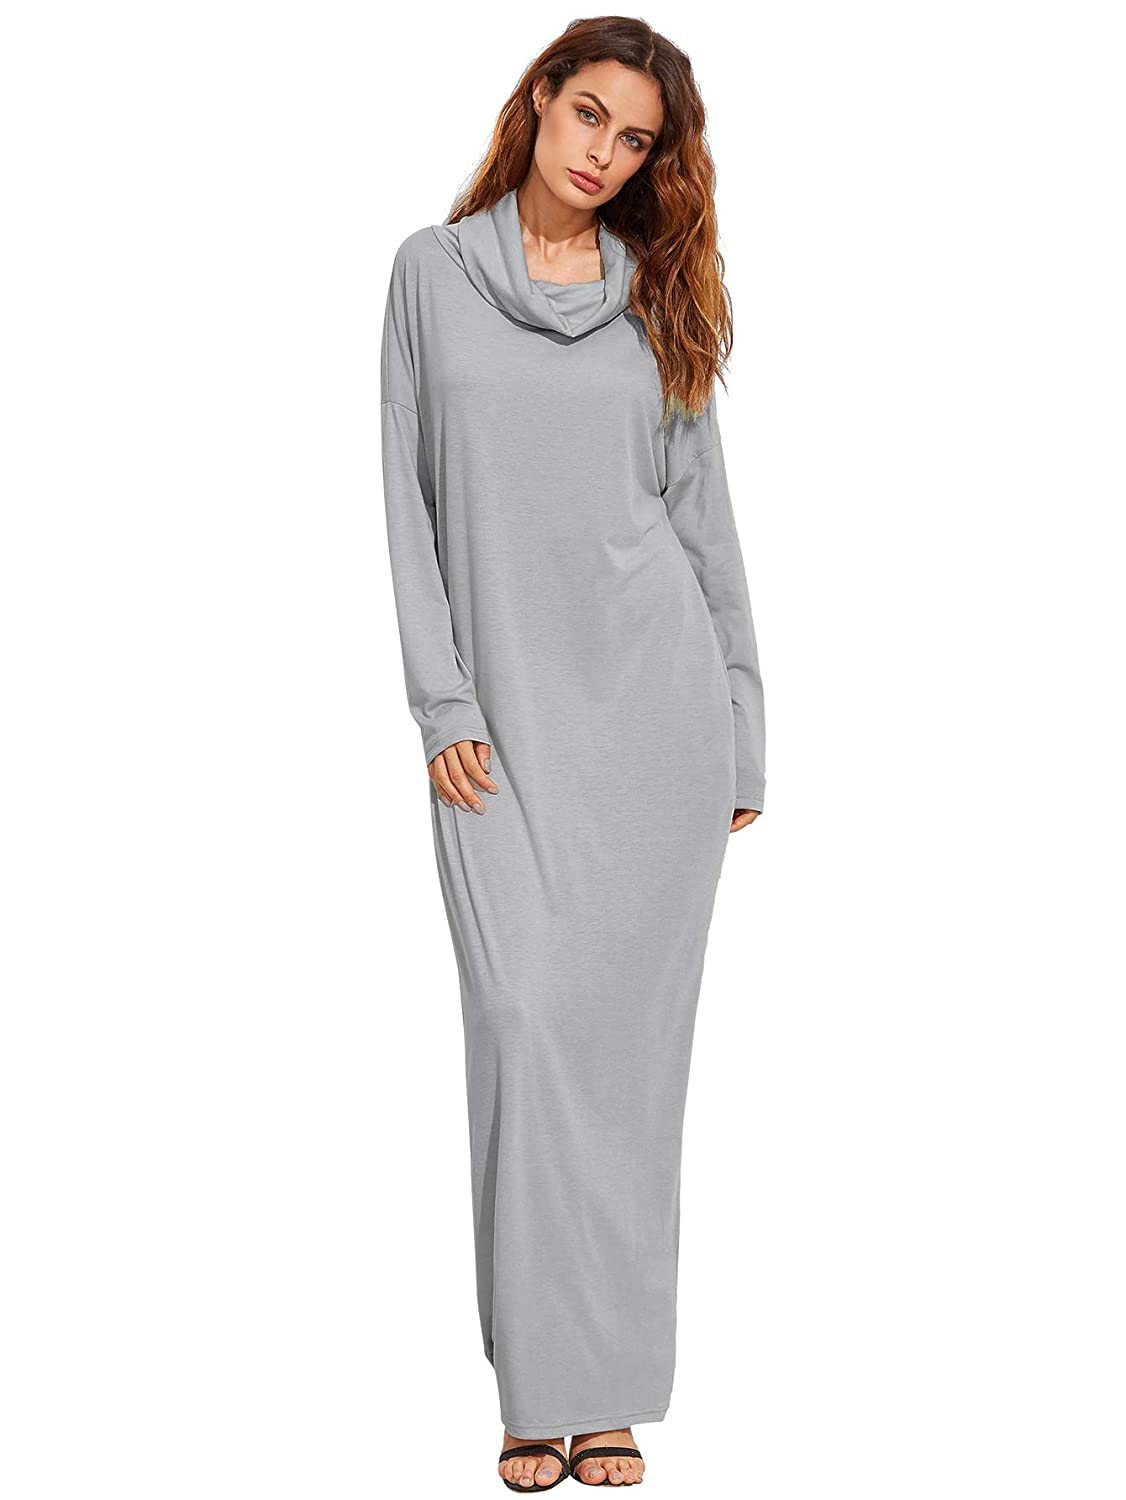 b92ba79af28 Verdusa Women's Casual Long Sleeve Cowl Neck Loose Pocket Shift Long Maxi  Dress Light Gray XS at Amazon Women's Clothing store: